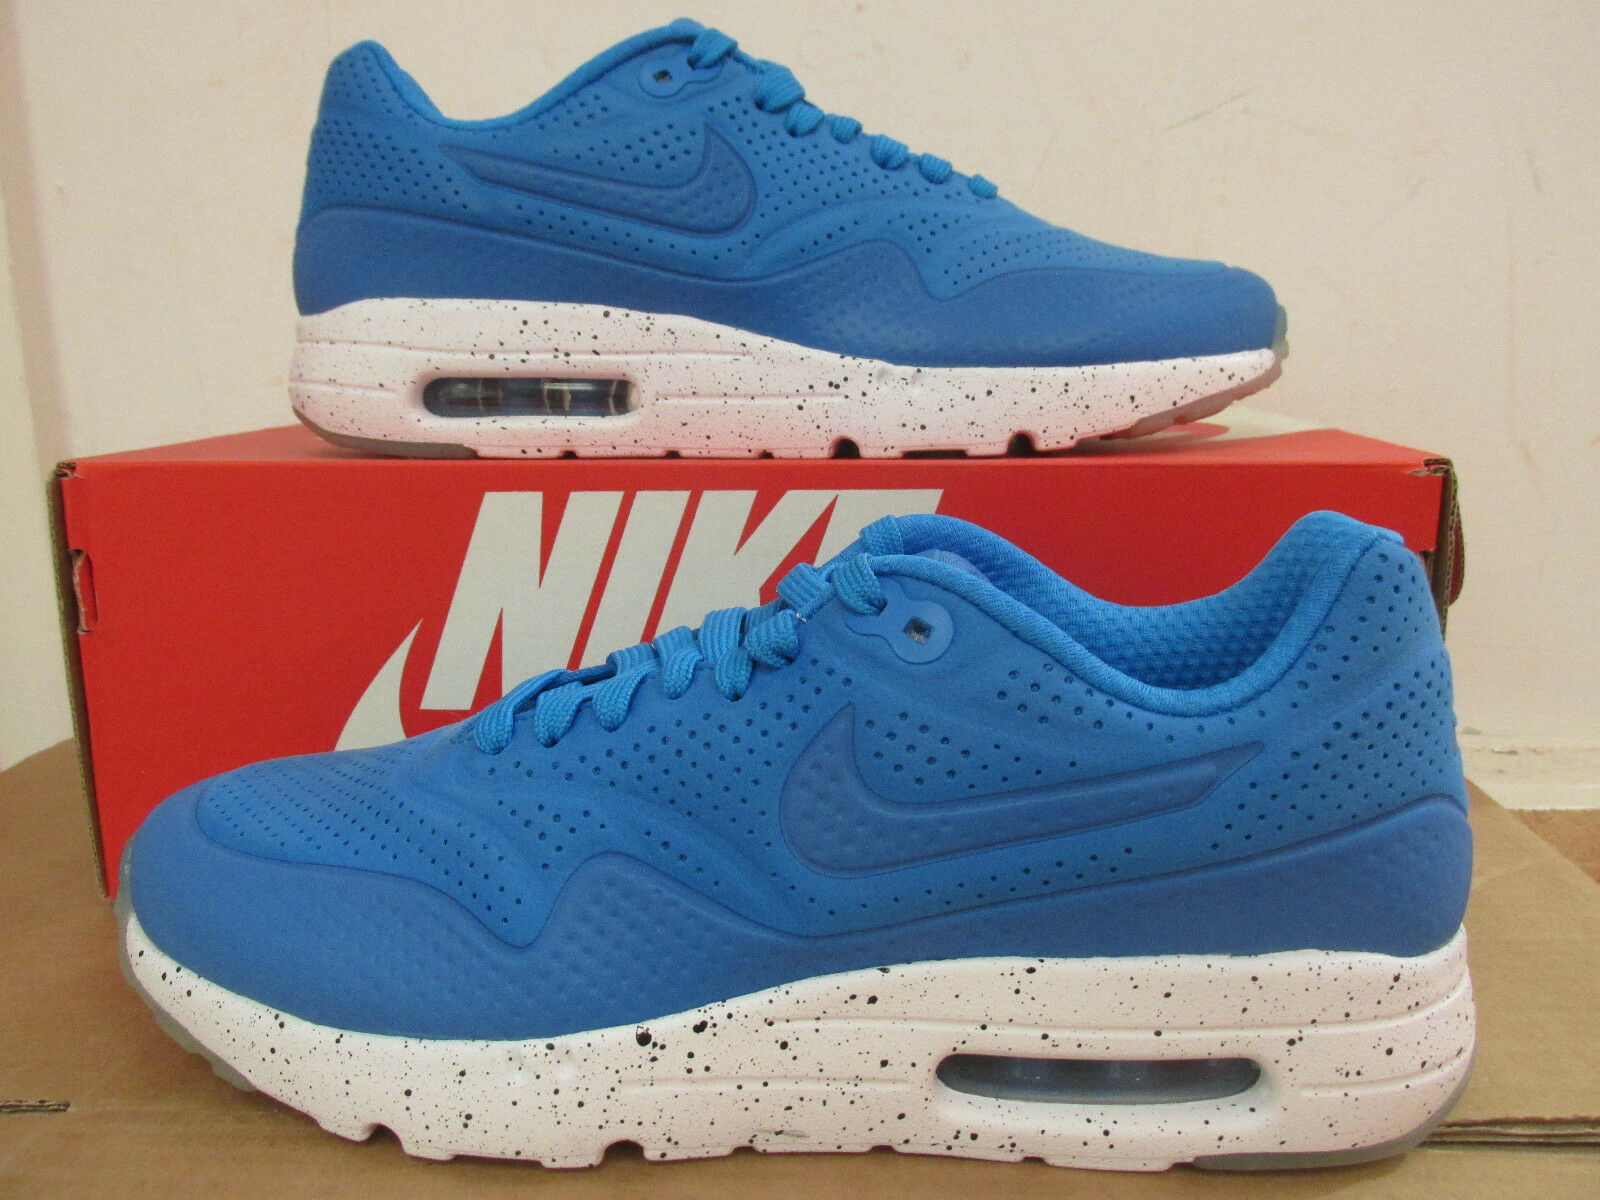 Nike Air Max 1 Ultra Moire homme Trainers 705297 411 Sneakers chaussures CLEARANCE